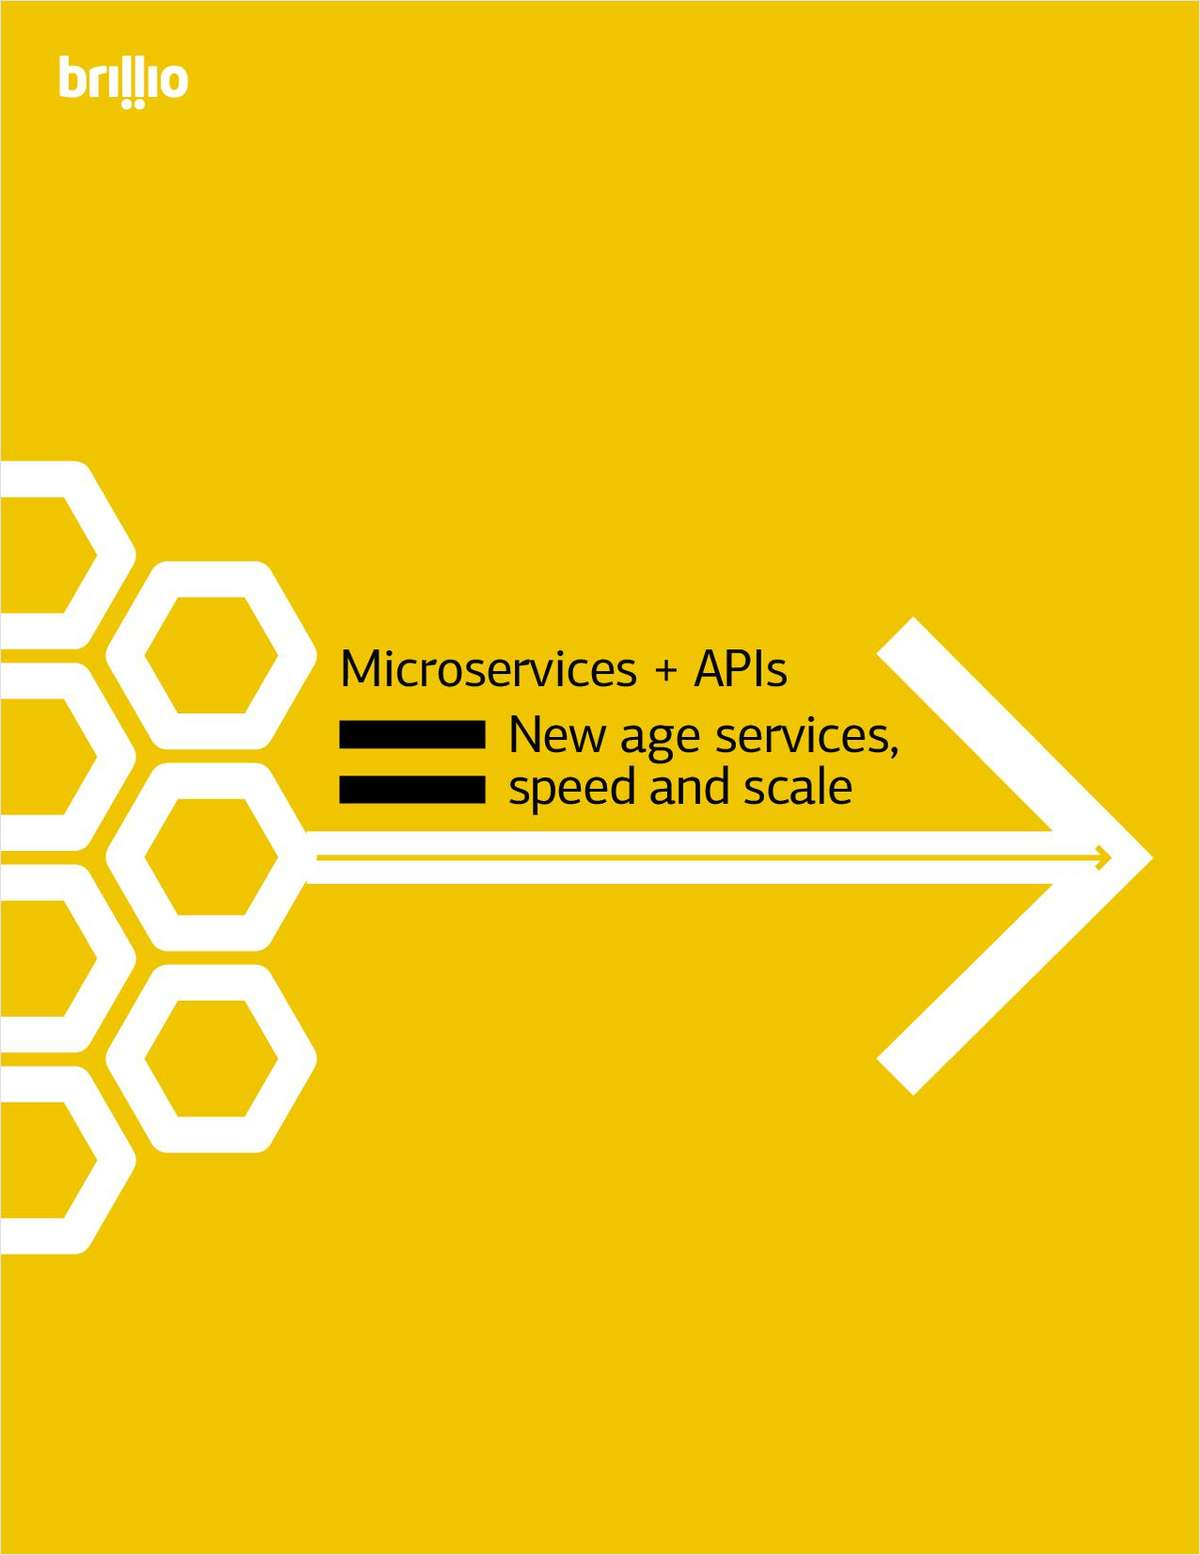 Microservices + APIs New Age Services, Speed and Scale